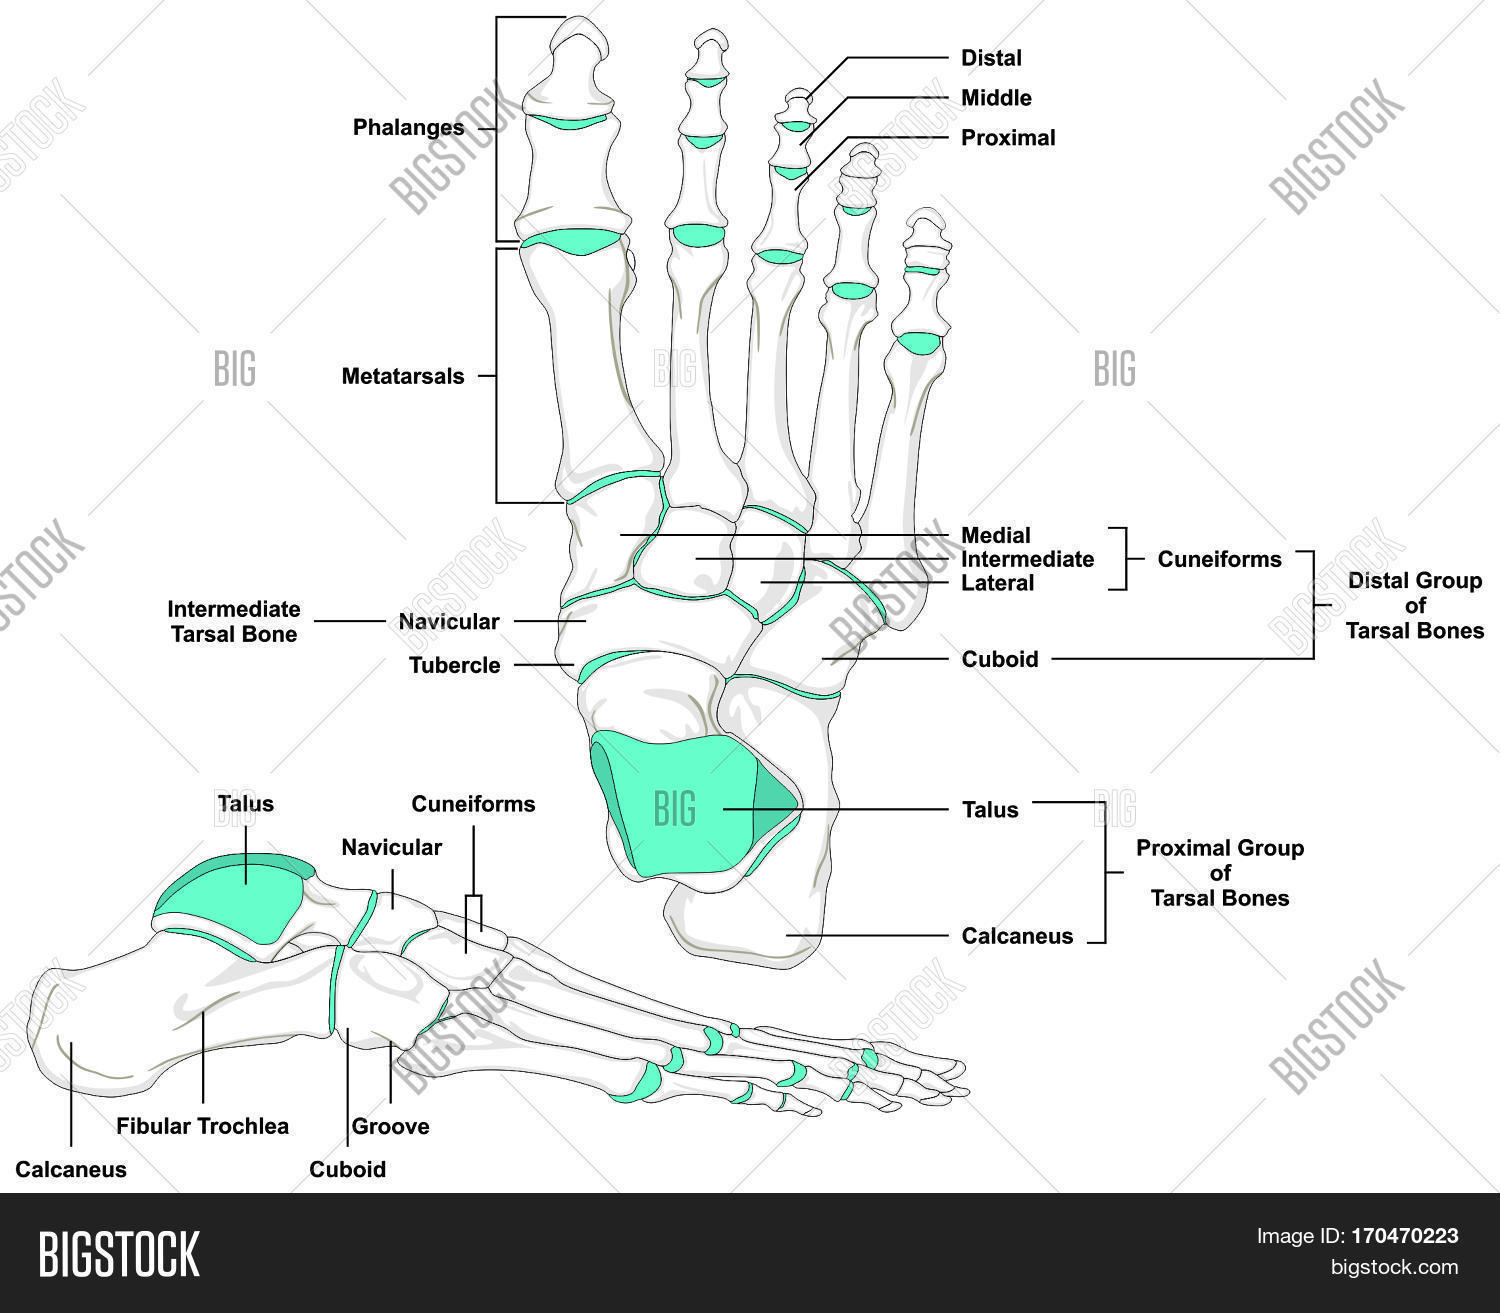 Section03 further E40191a93c607e8e 1200 Sq Ft House Plans 2 Bedrooms 2 Baths 1200 Square Foot House Floor Plans furthermore Stock Photo Human Foot Bones Anatomy Diagram In Anatomical Position Front And Lateral View With All Bone Names And Joints For Medical Education further Lcvslong  bination Vehicles moreover Football Kiking In Motion Clipart. on 53 foot